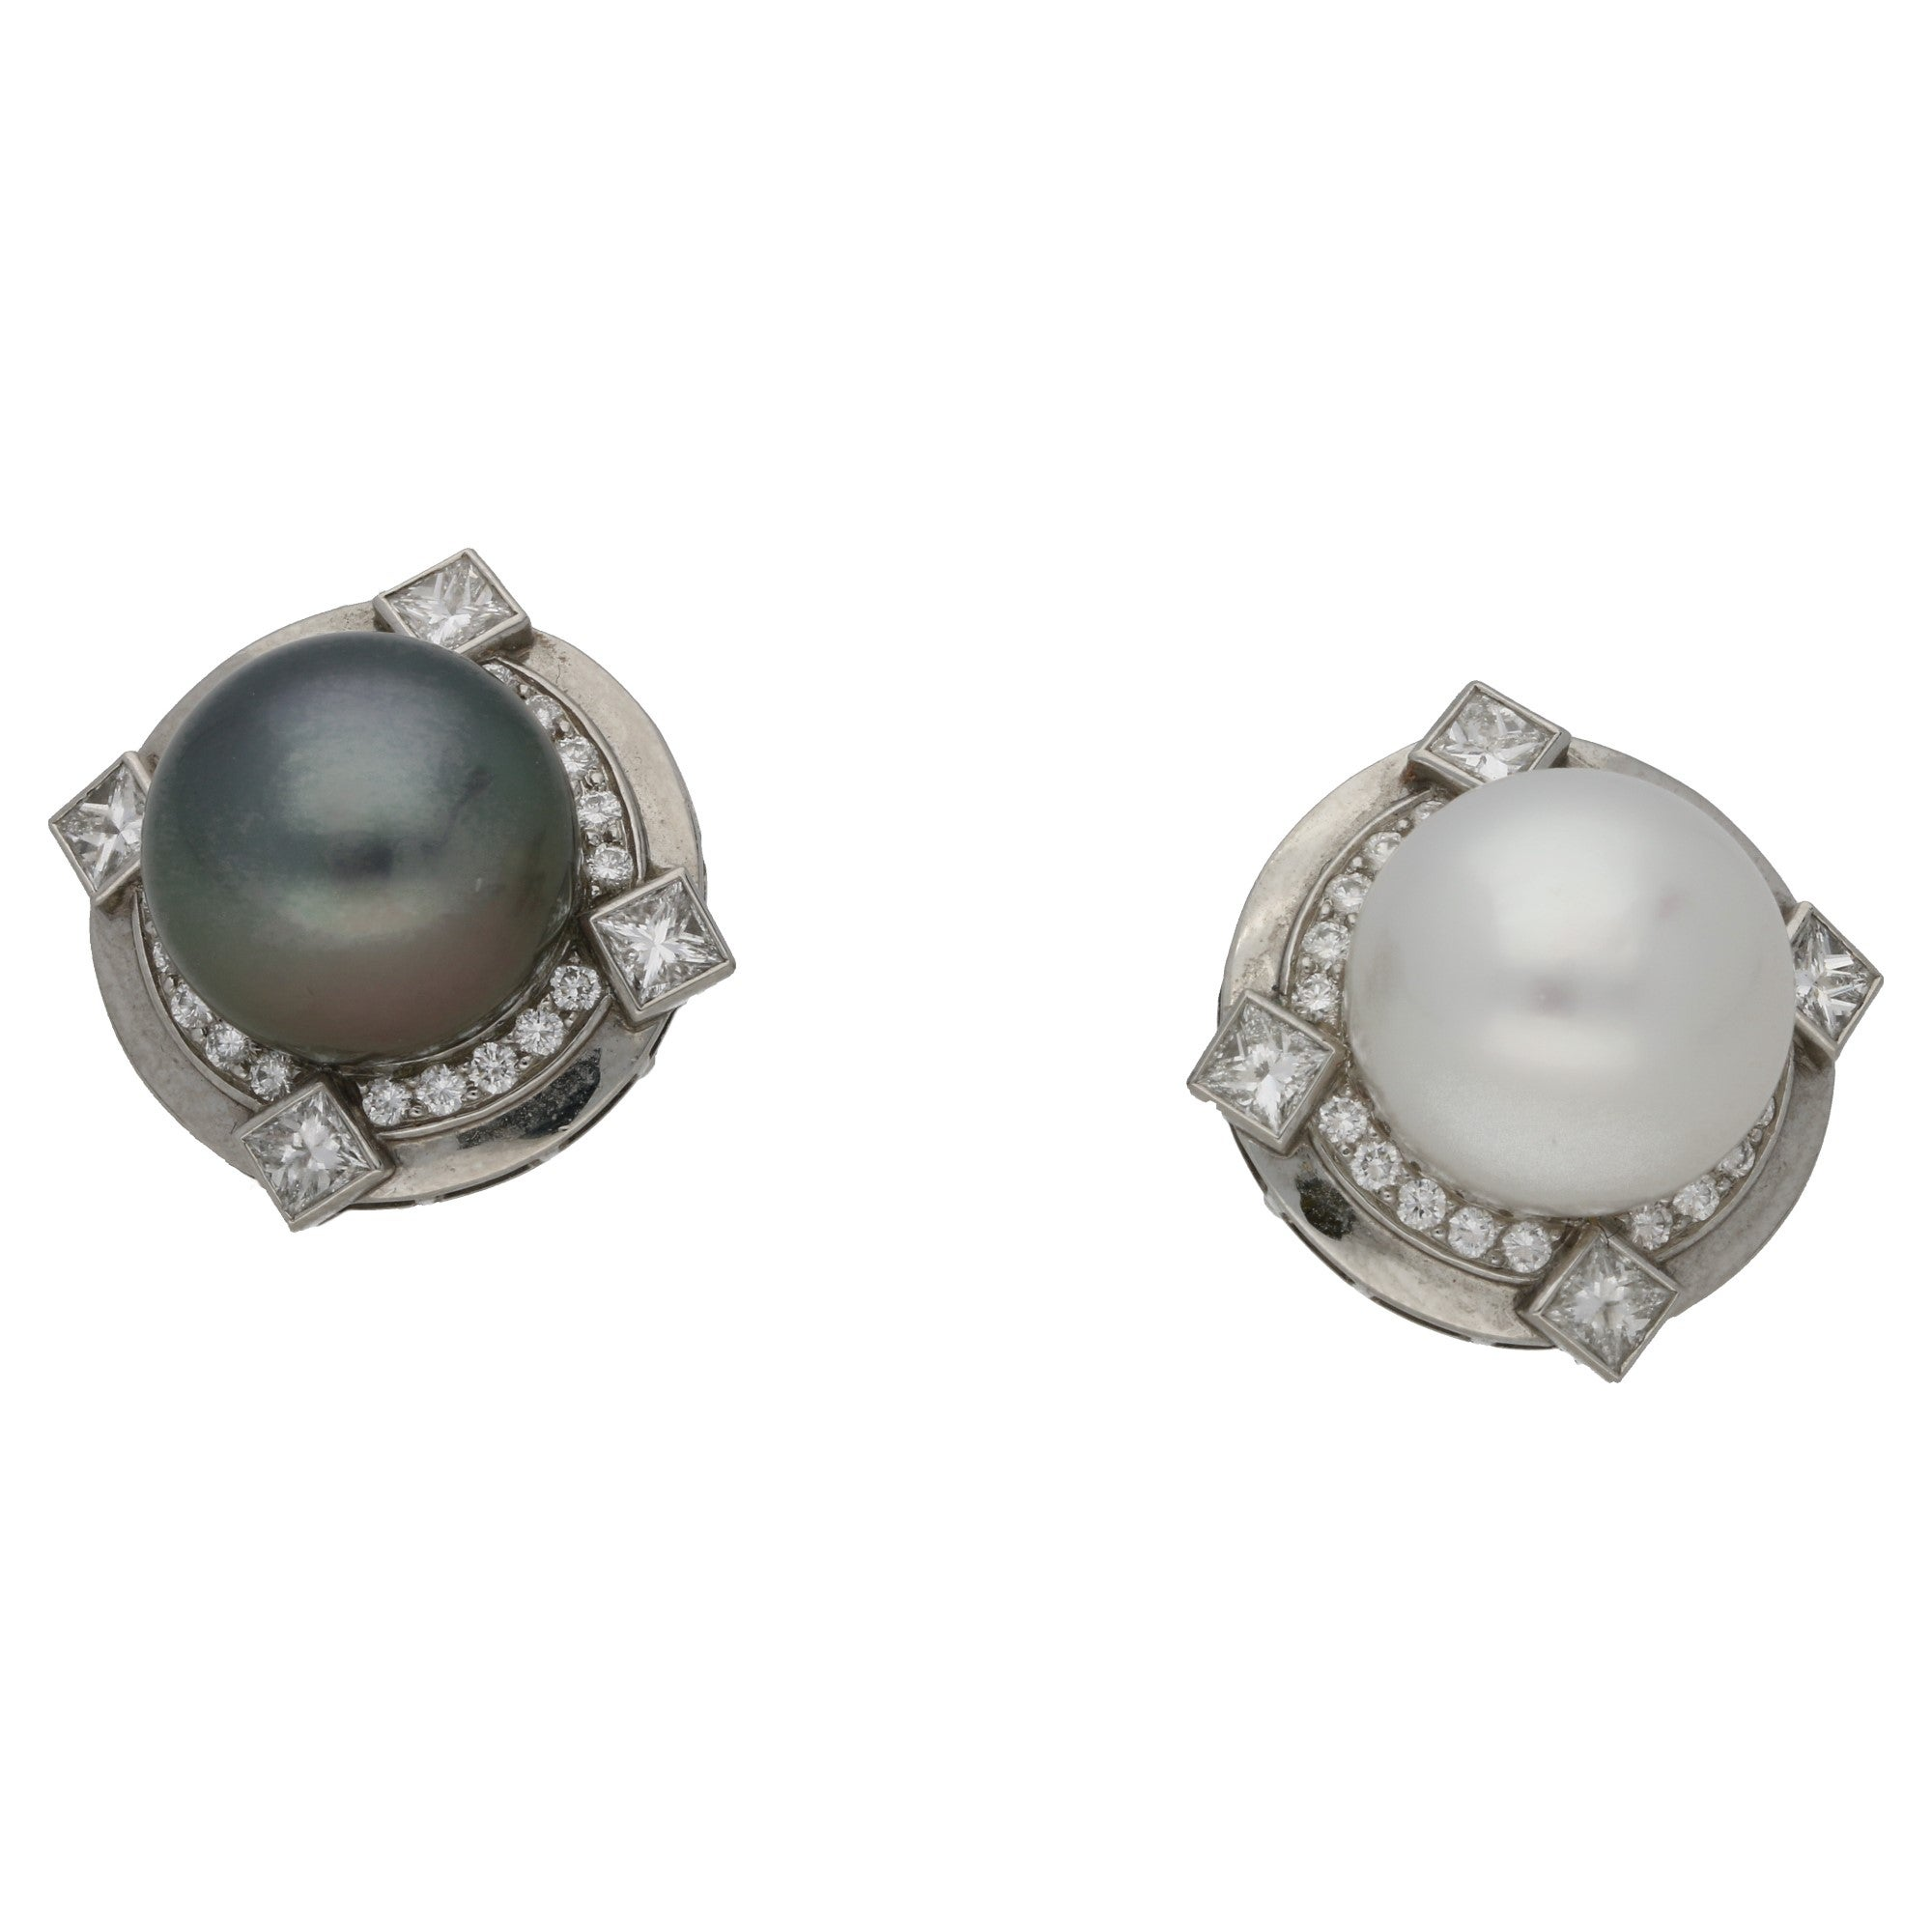 with over earrings product free button watches on lotus indonesia elegant white freshwater big silver flower pearls eyed setting stud shipping orders of sterling jewelry